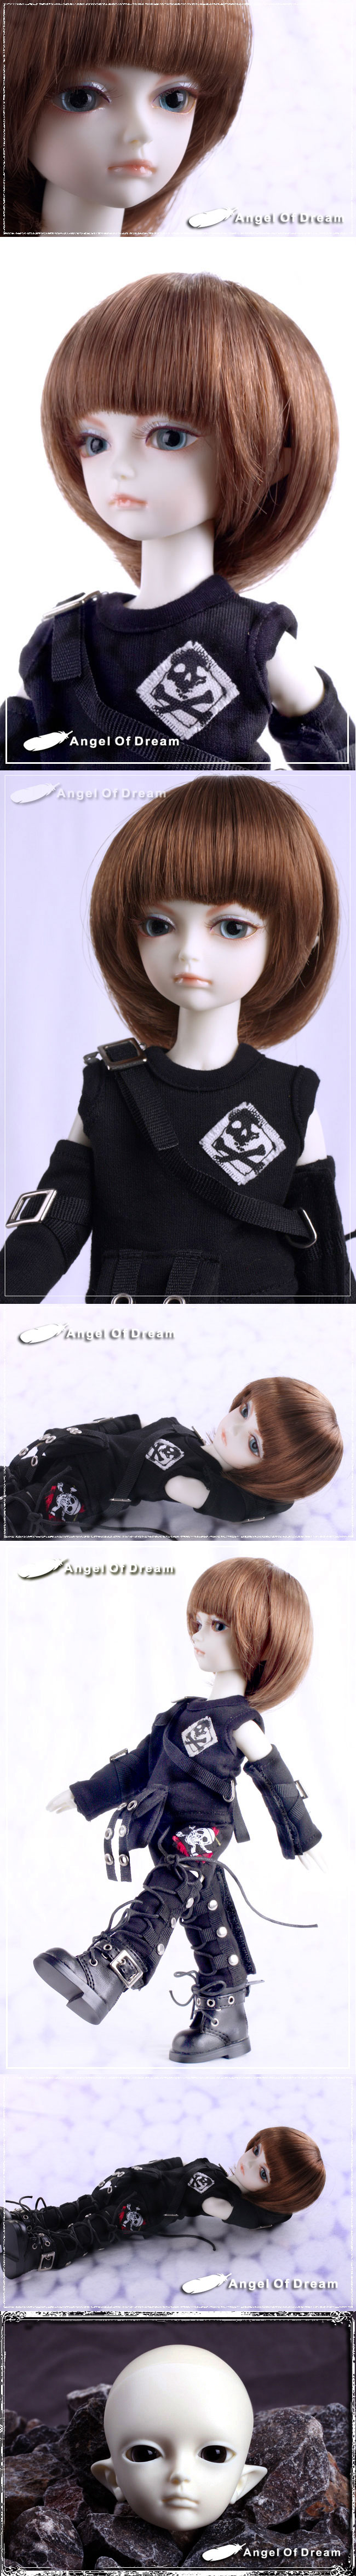 BJD Aiai 27cm Boy Ball-jointed doll